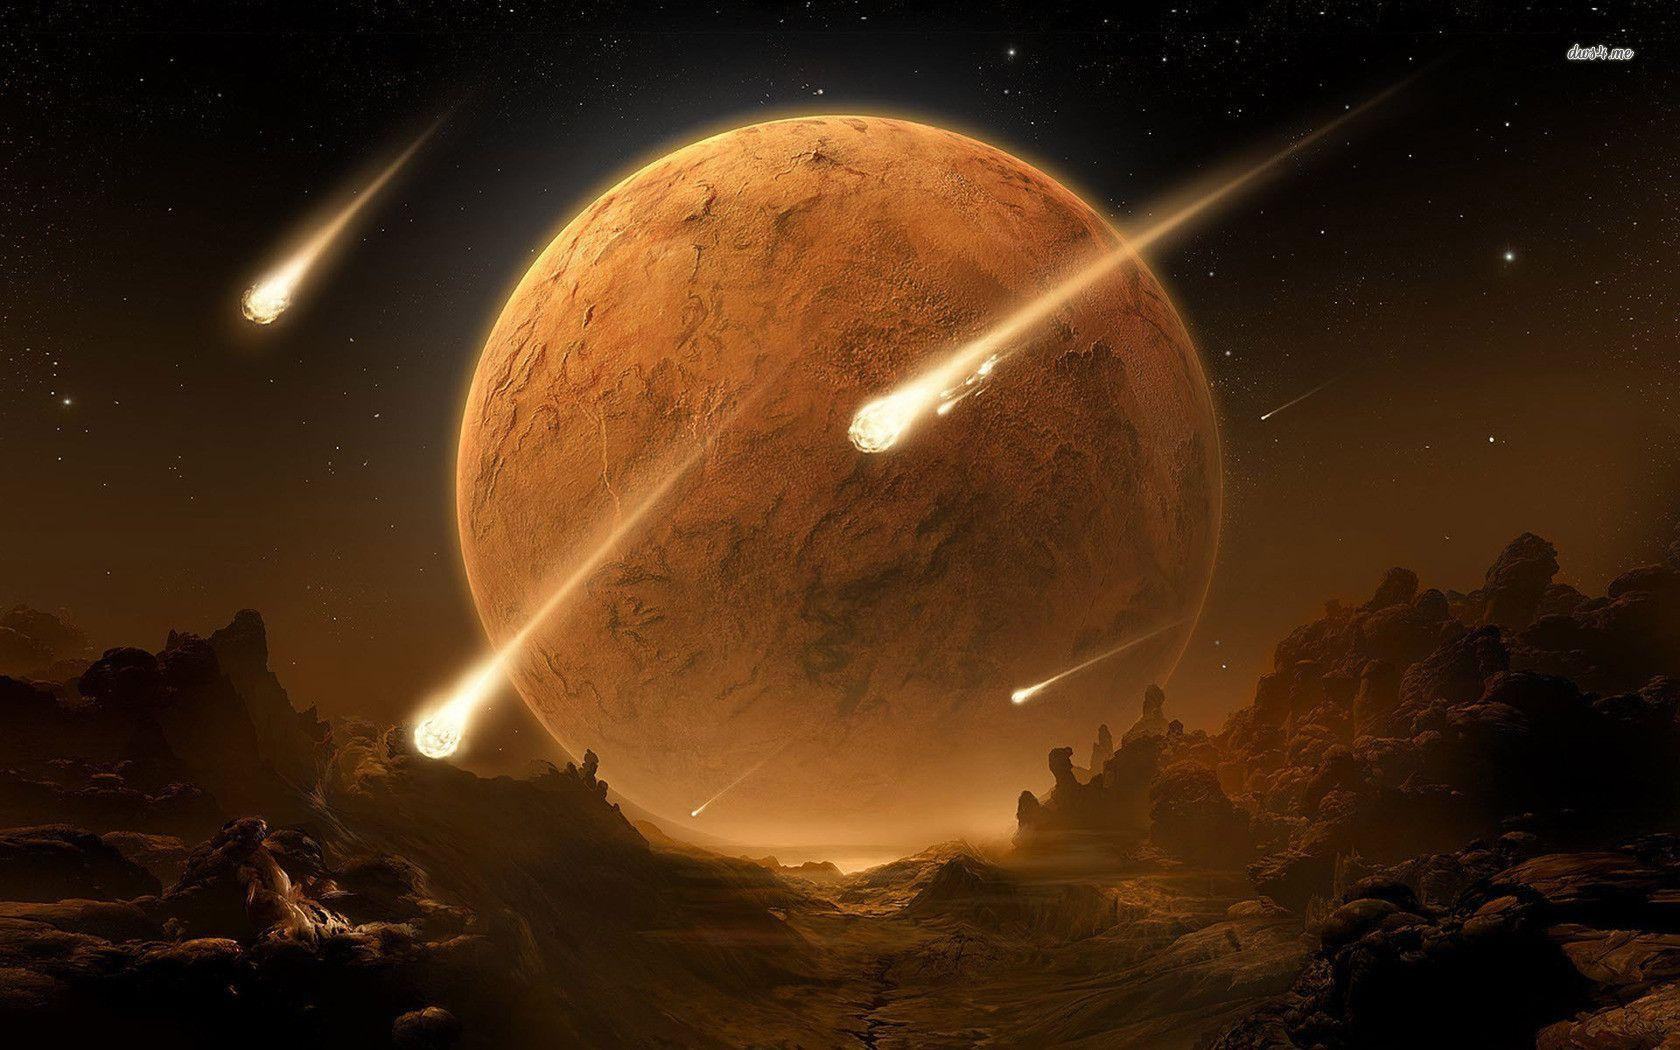 Meteor Wallpapers HD Backgrounds, Images, Pics, Photos Free Download ...